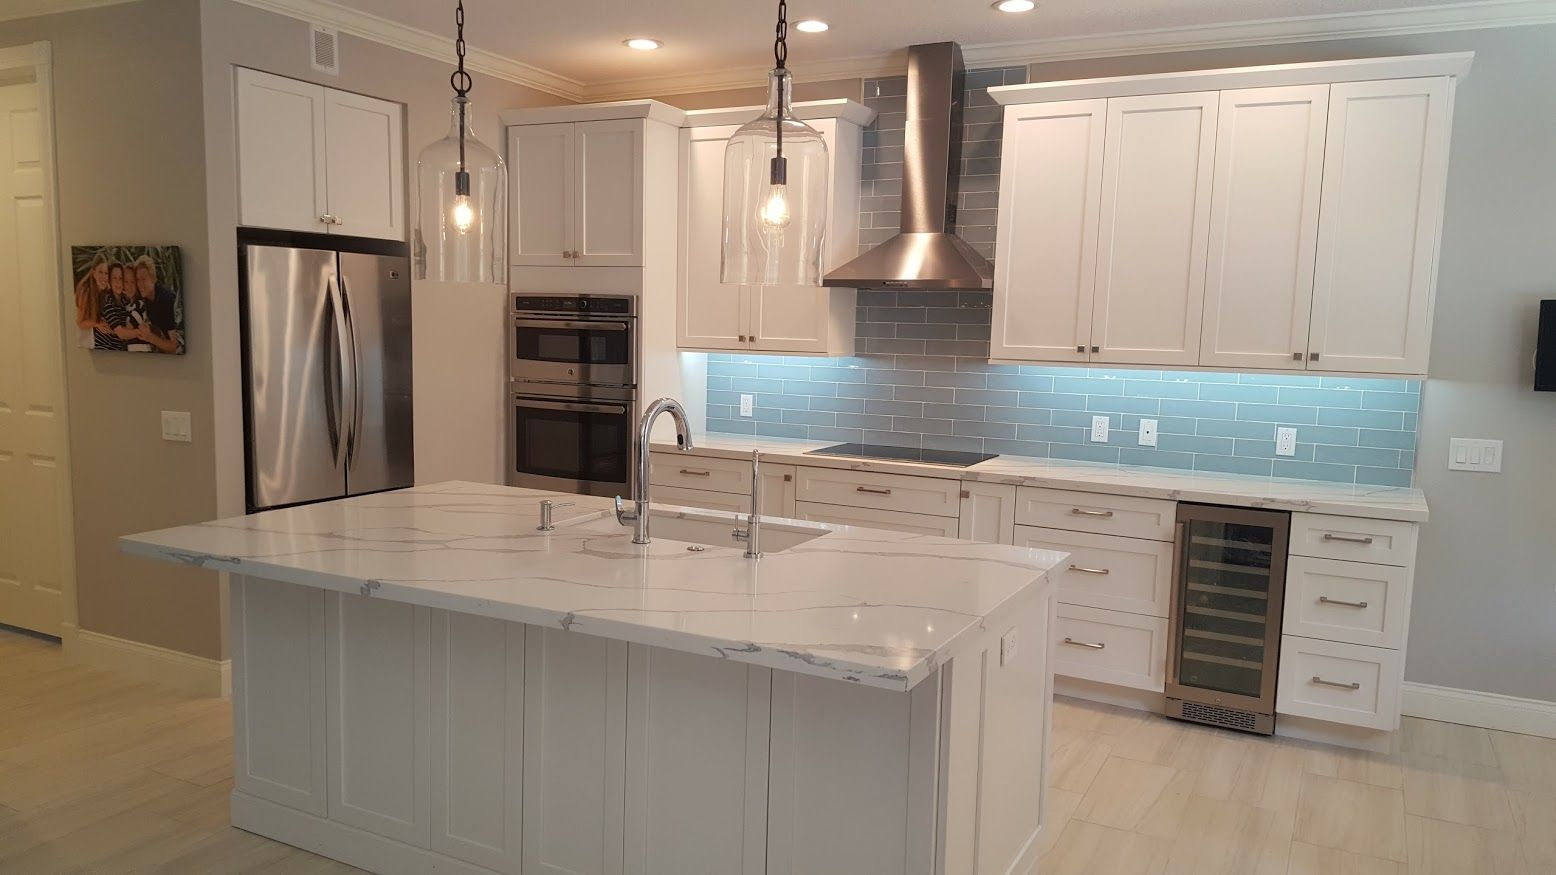 We Shipped These White Shaker Style Cabinets By Eudora To Jupiter Florida For An Old High School Friend That I W Shaker Style Cabinets Hall House Shaker Style